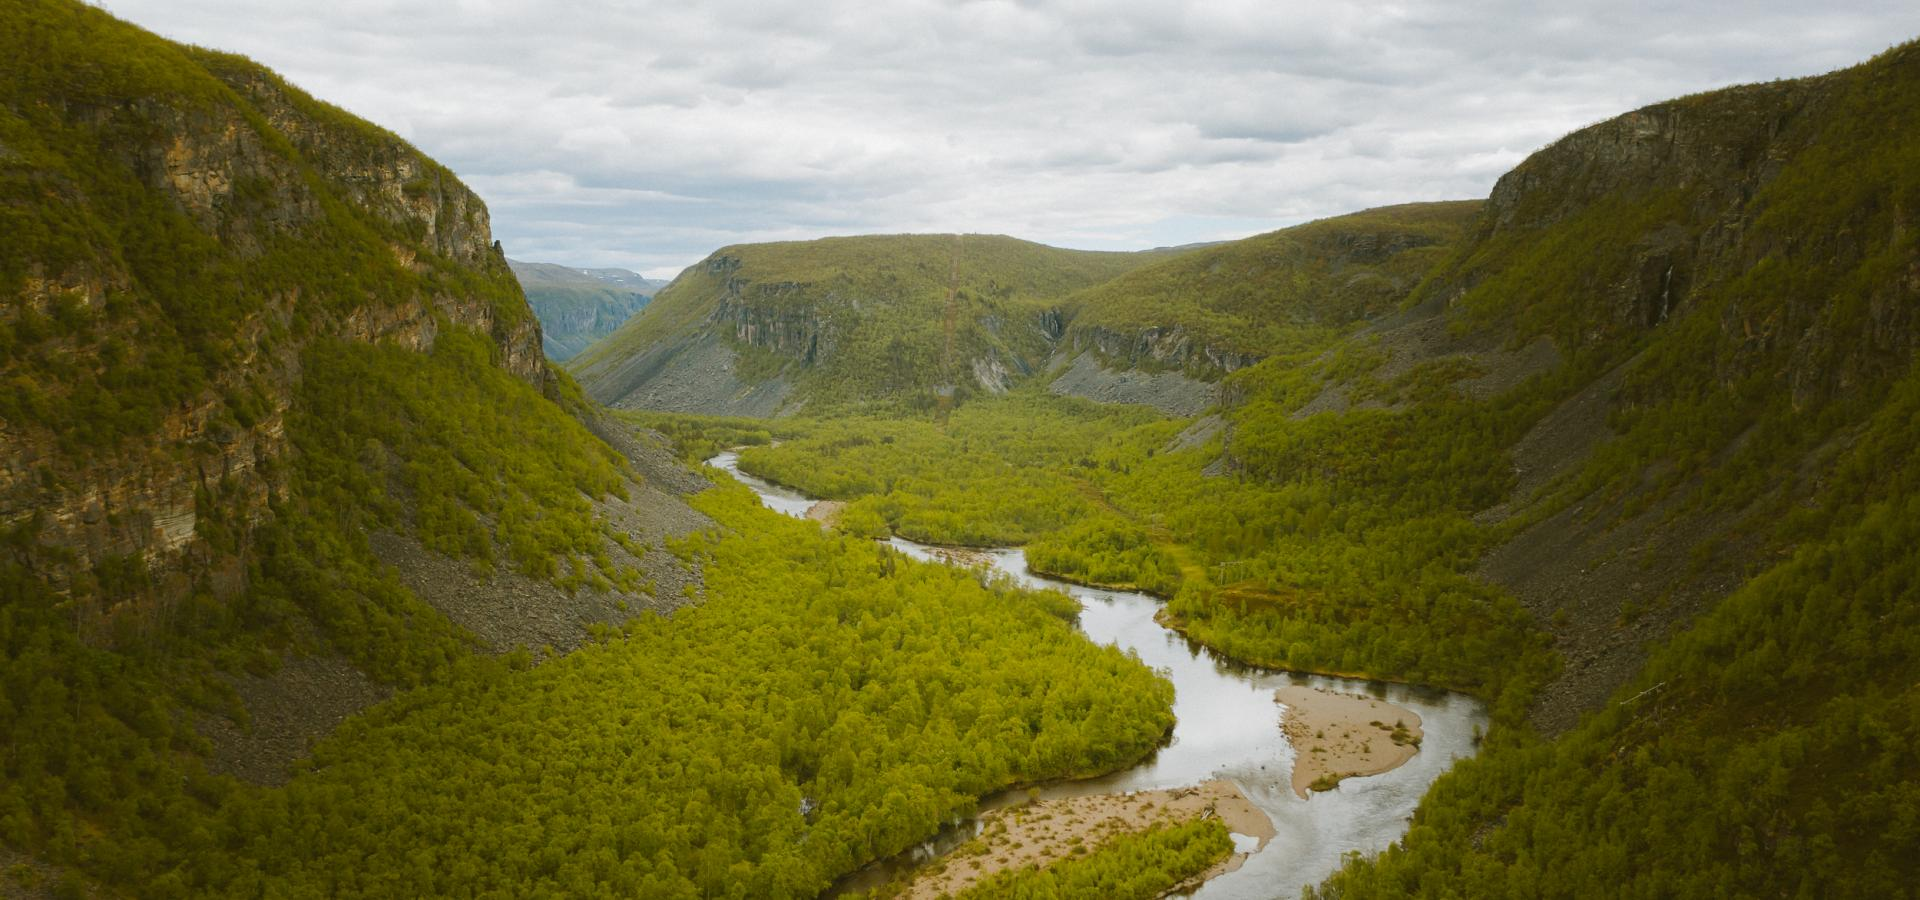 Birdseye view of the Reisa River and the valley with the green forest and the mountainsides